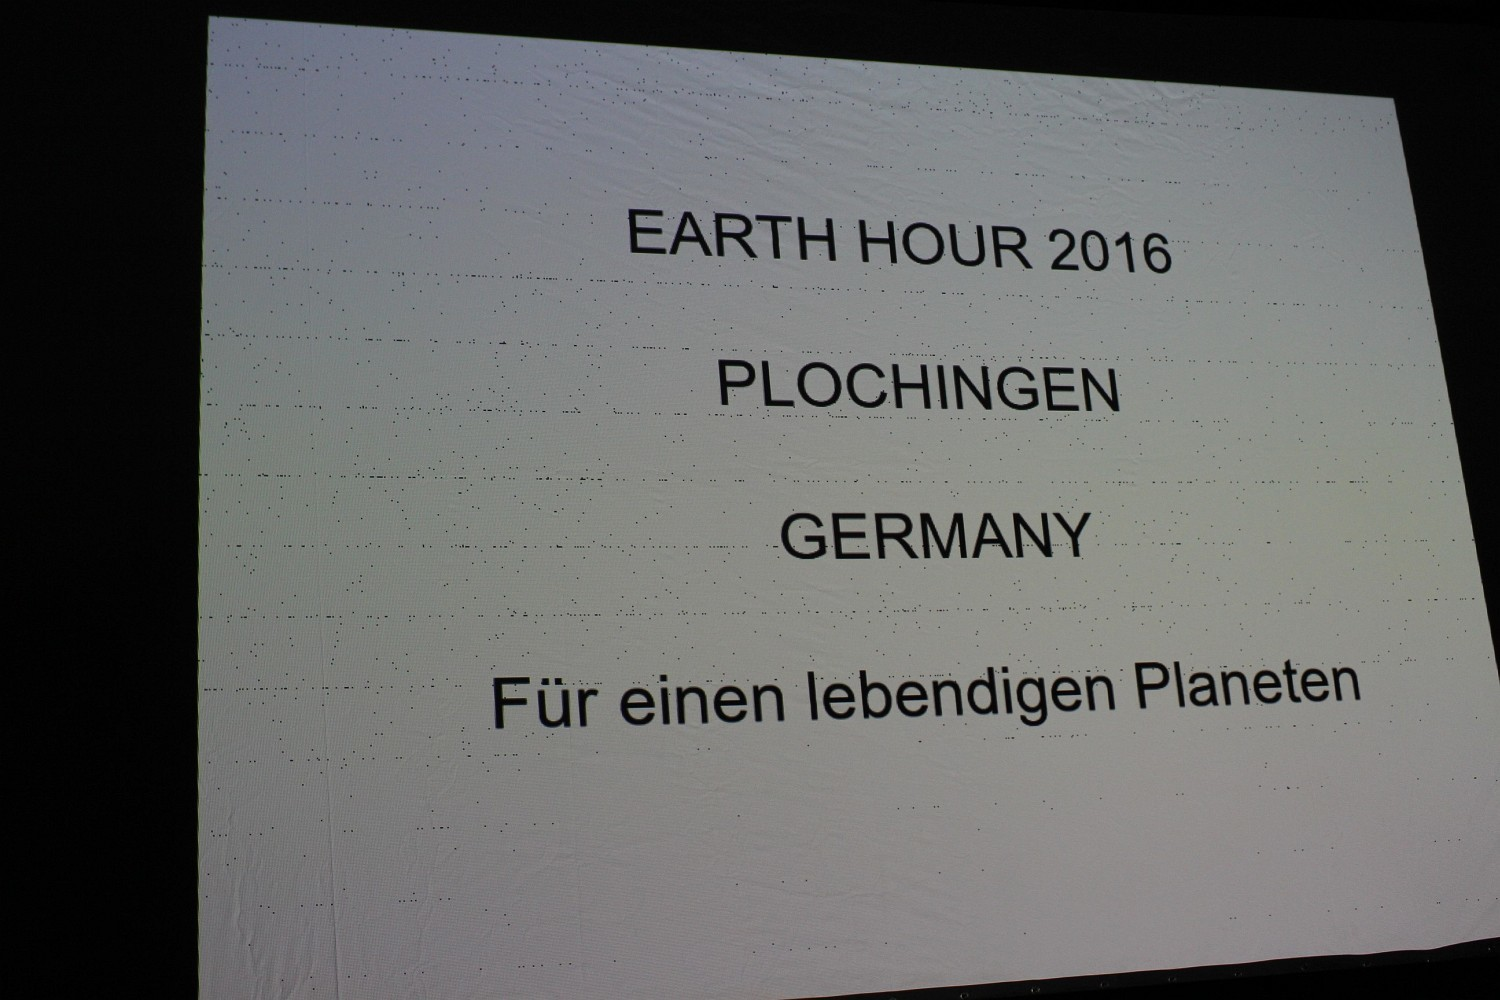 Foto: Rainer Hauenschild: Earth Hour 2016 in Plochingen - Für einen lebendigen Planeten!